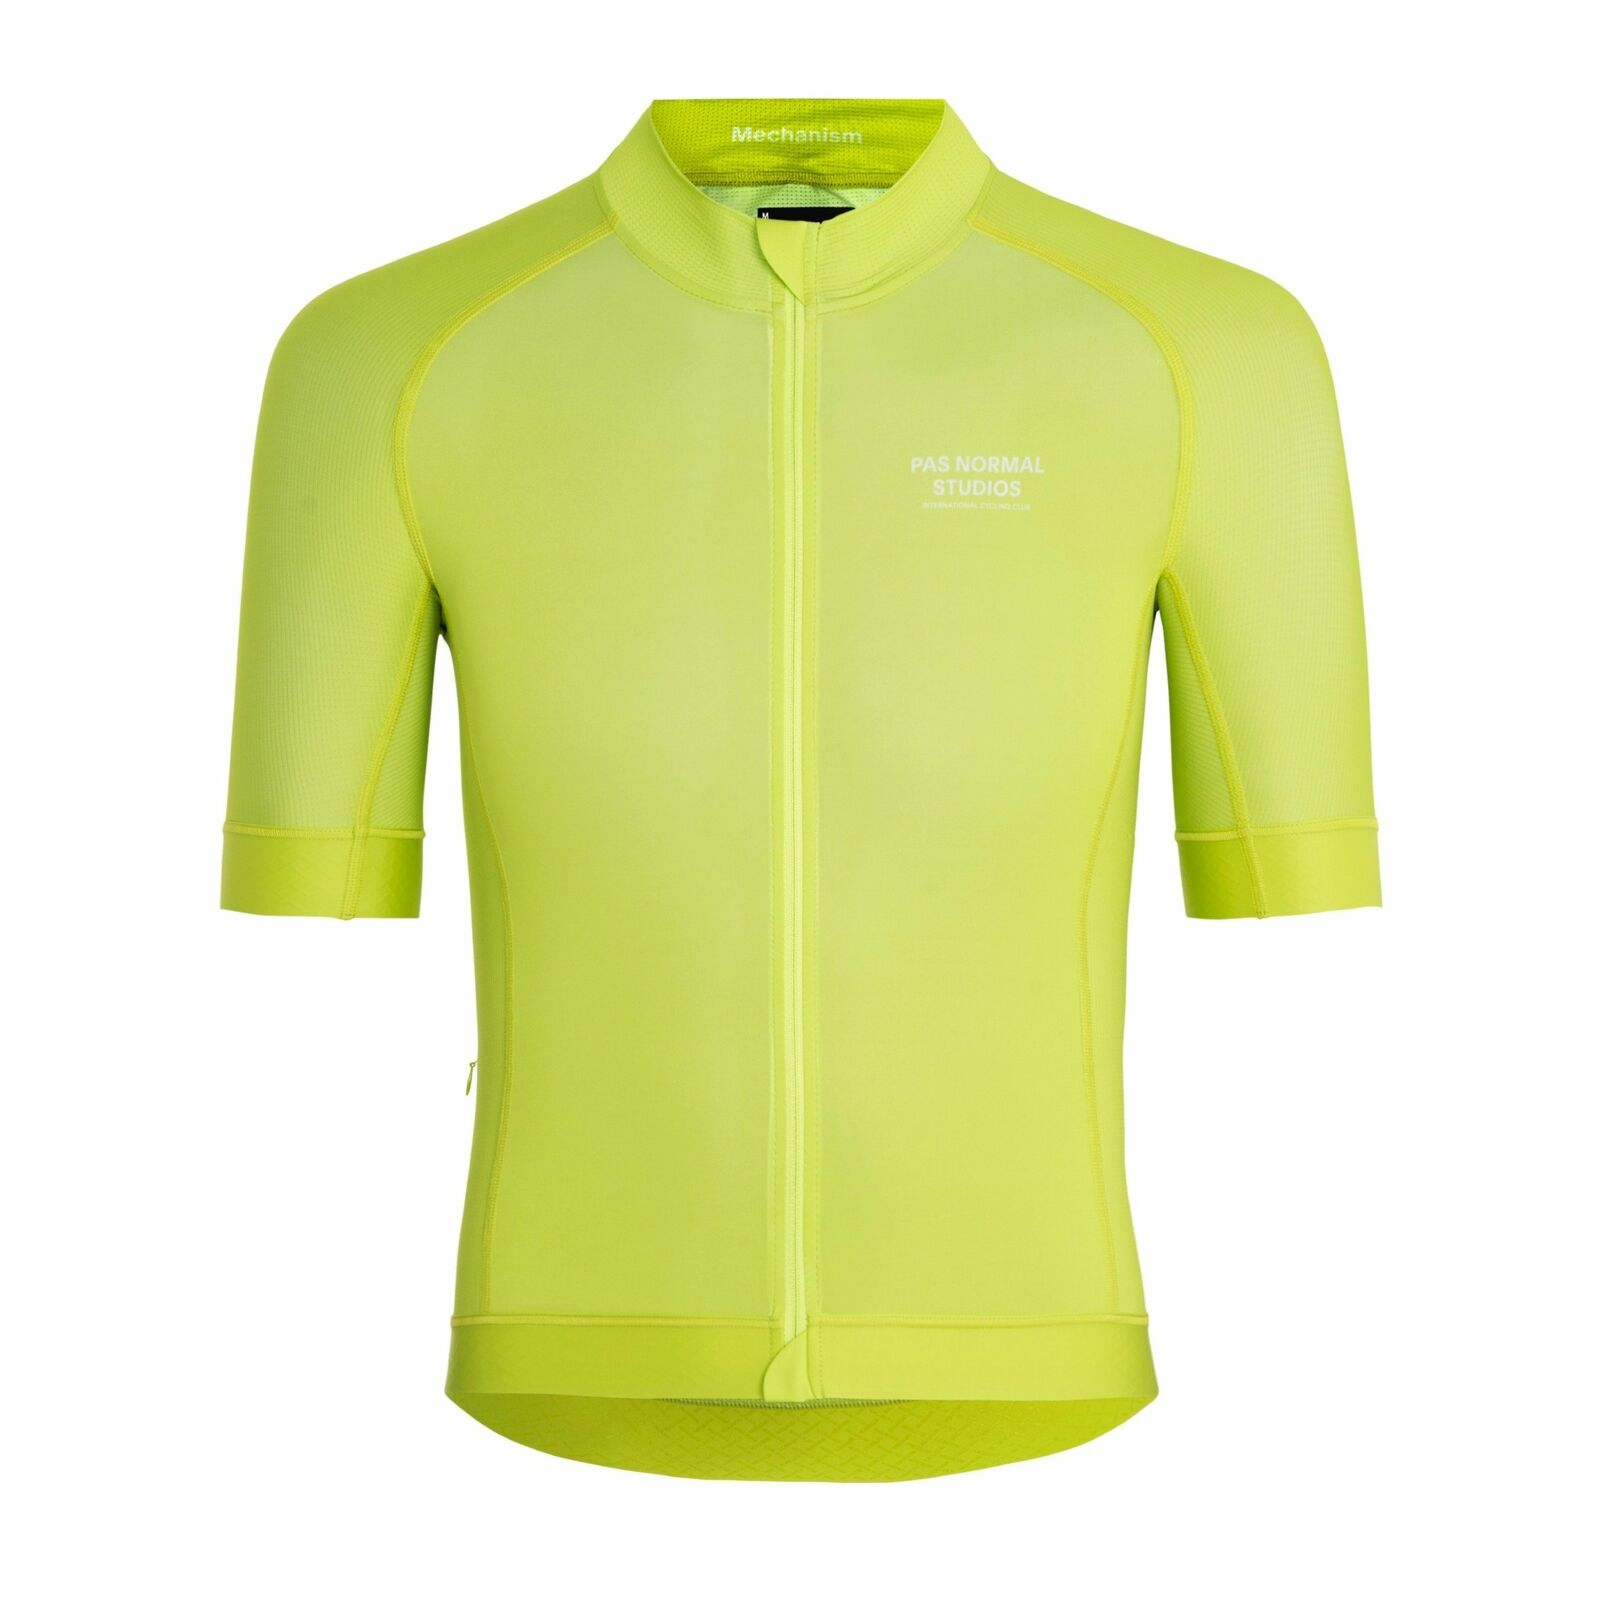 Pas Normal Studios Mechanism Jersey - Bright Lime